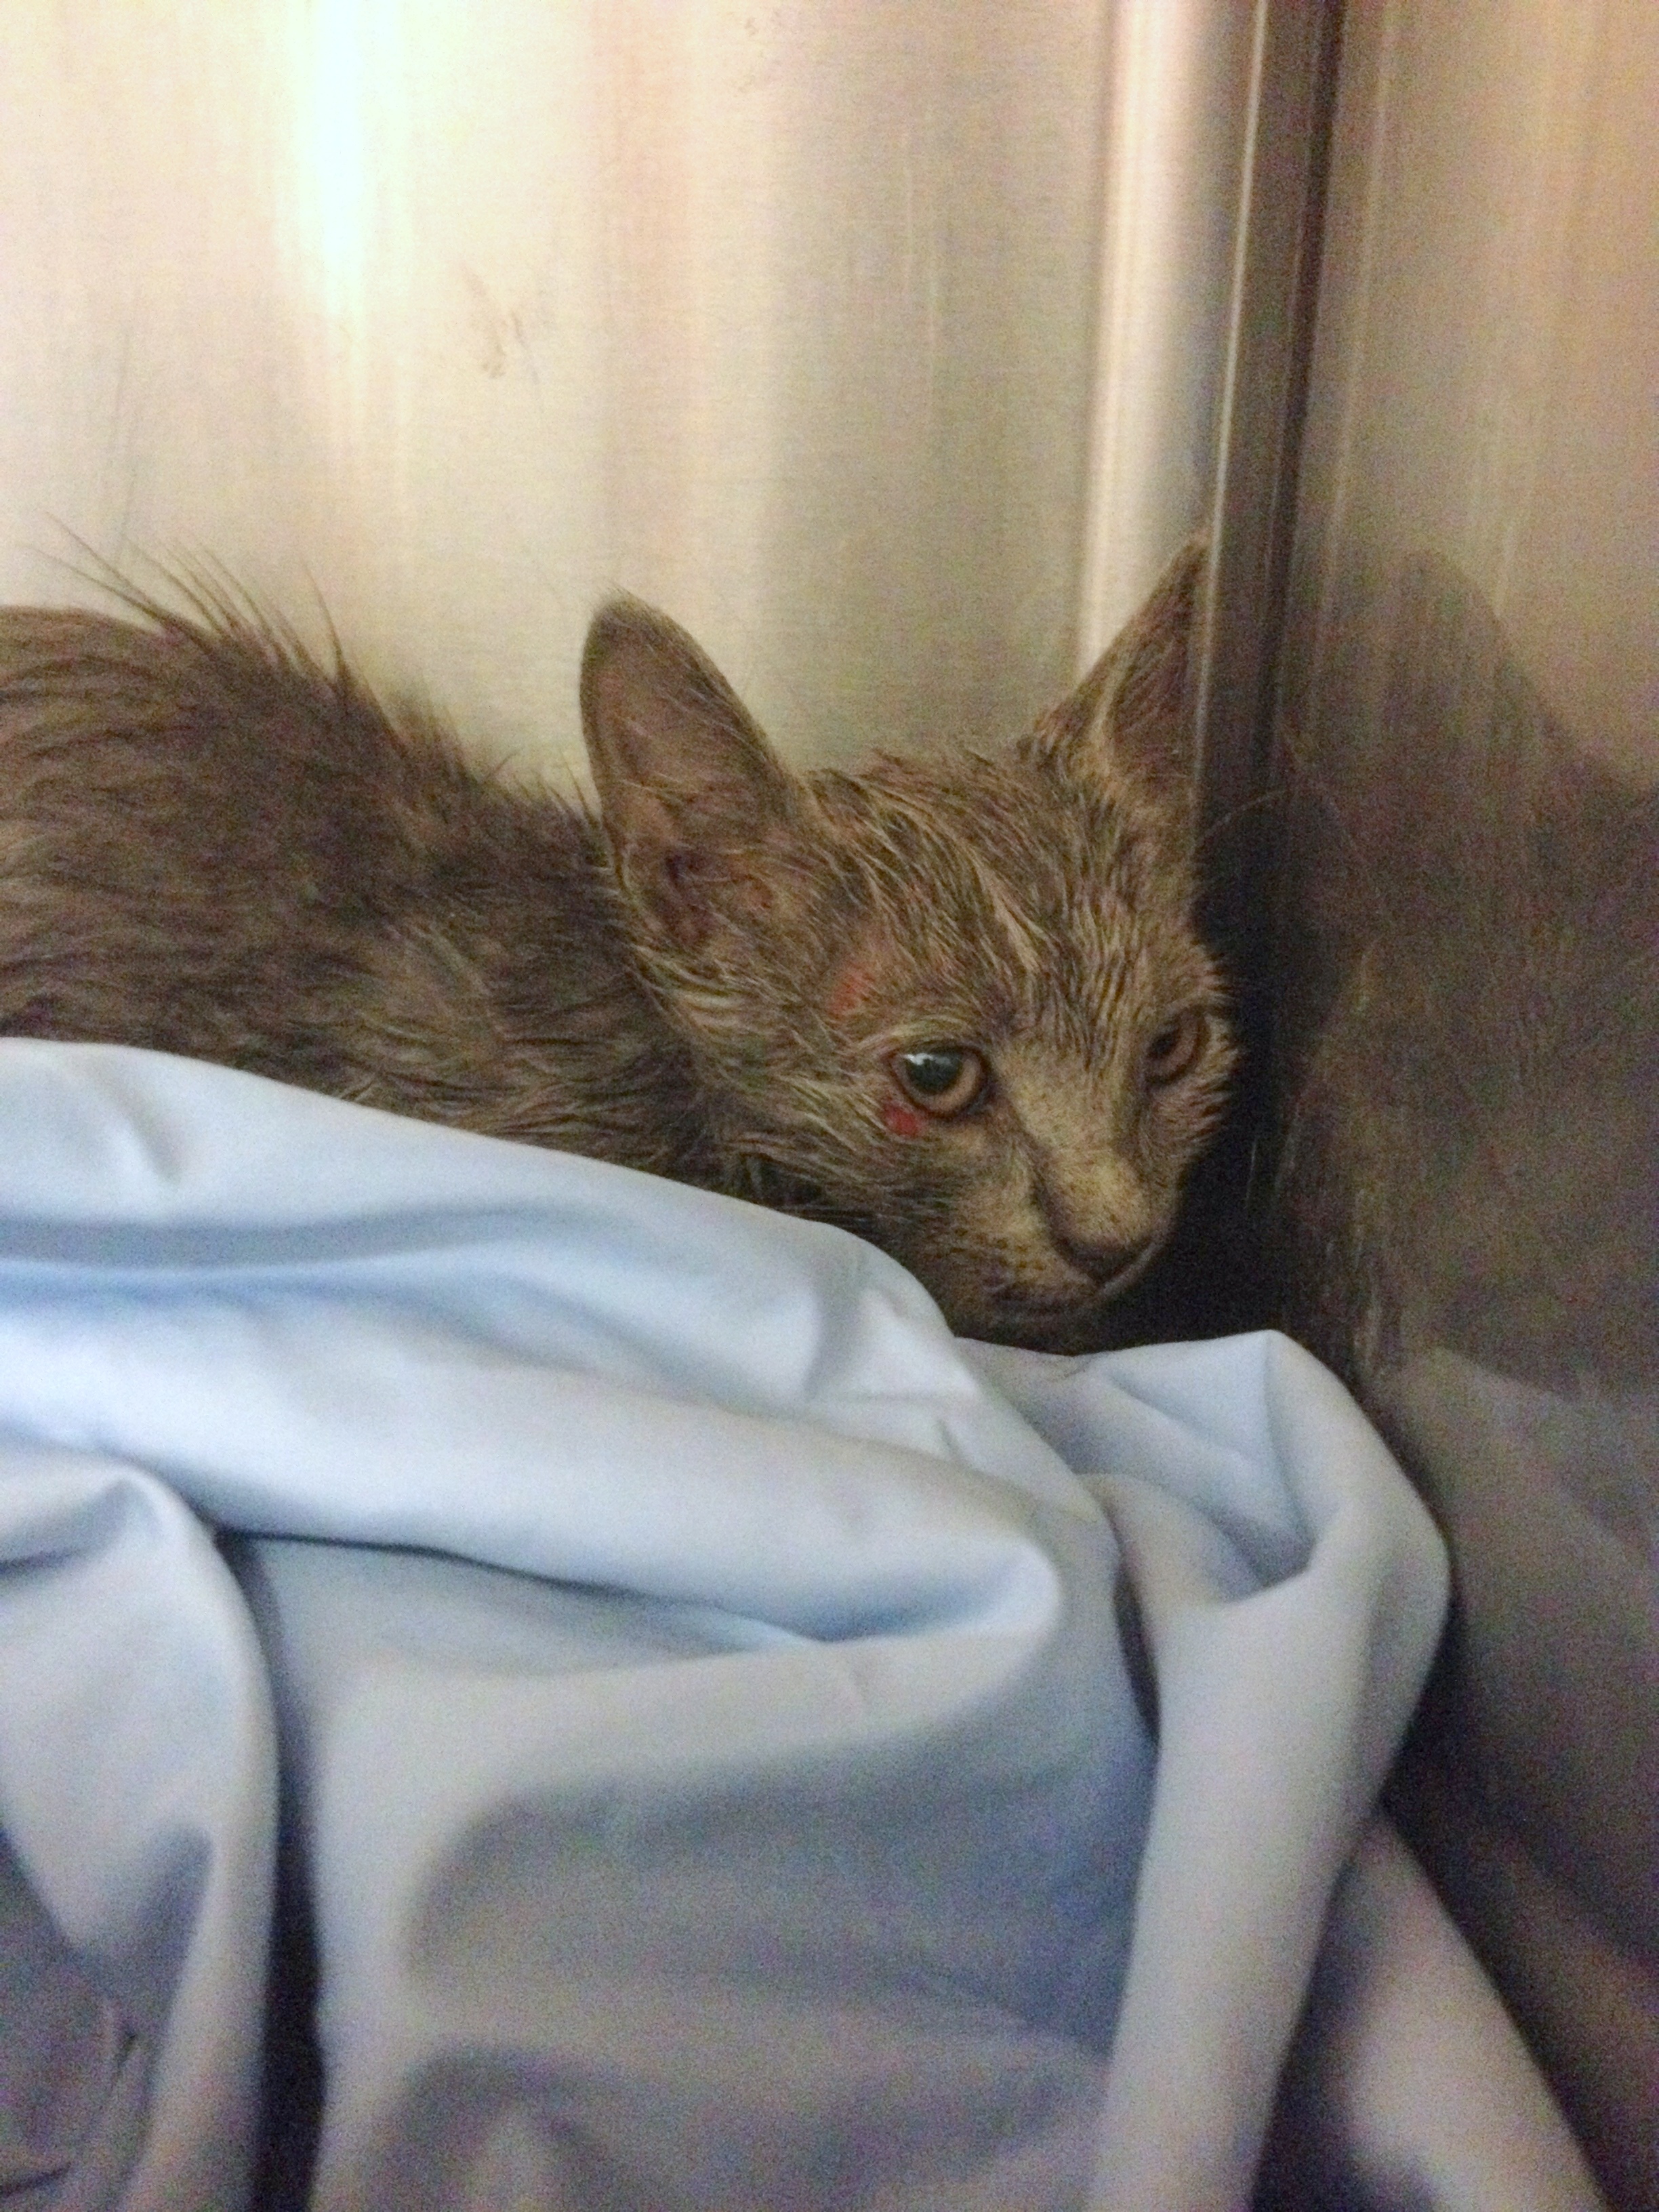 Kitten tossed from bridge cowers in corner of his kennel.